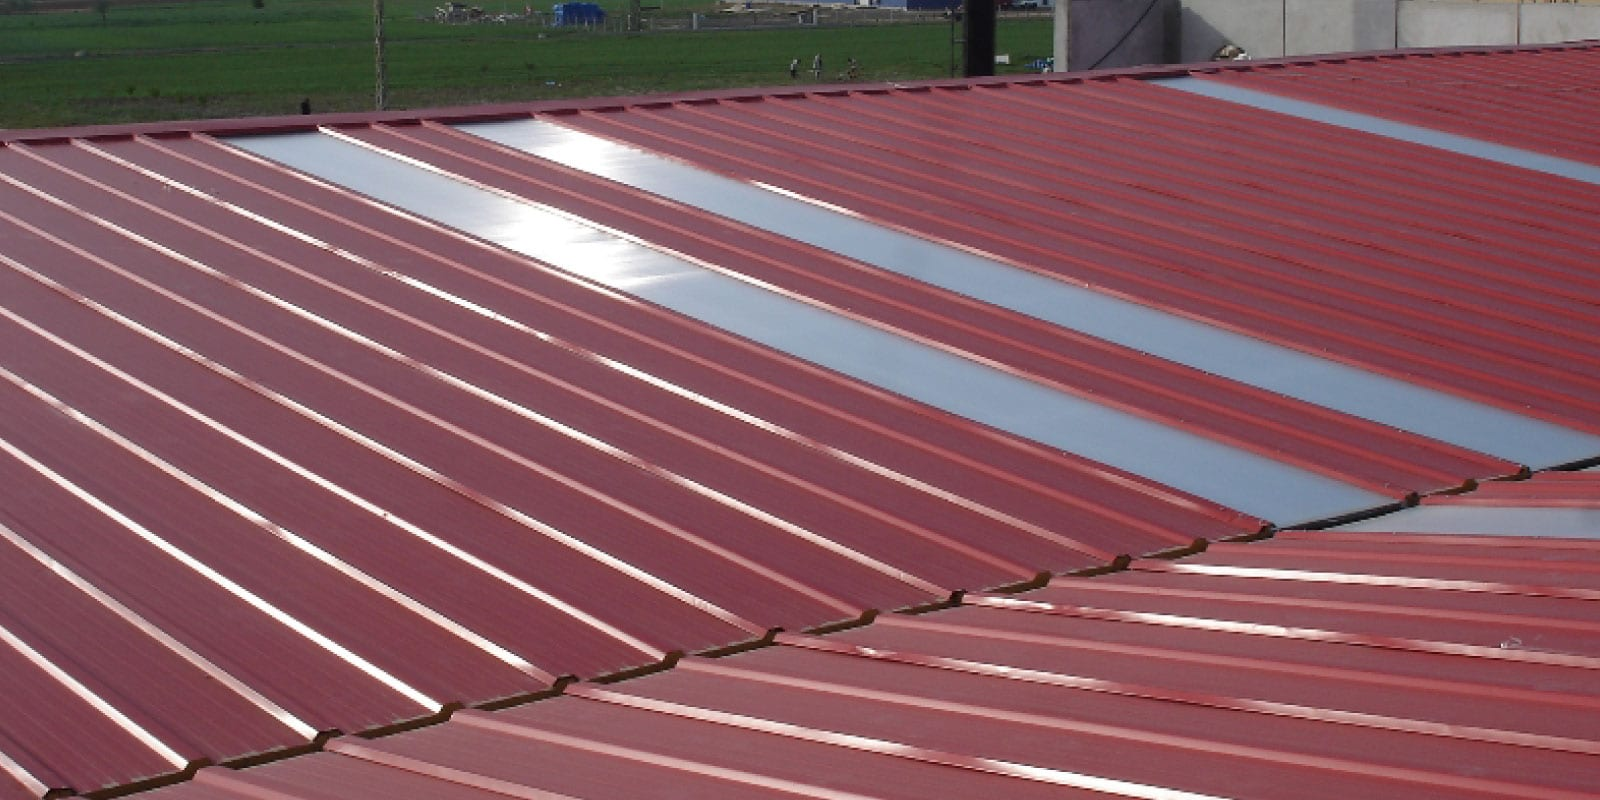 industrial commercial roofing sydney